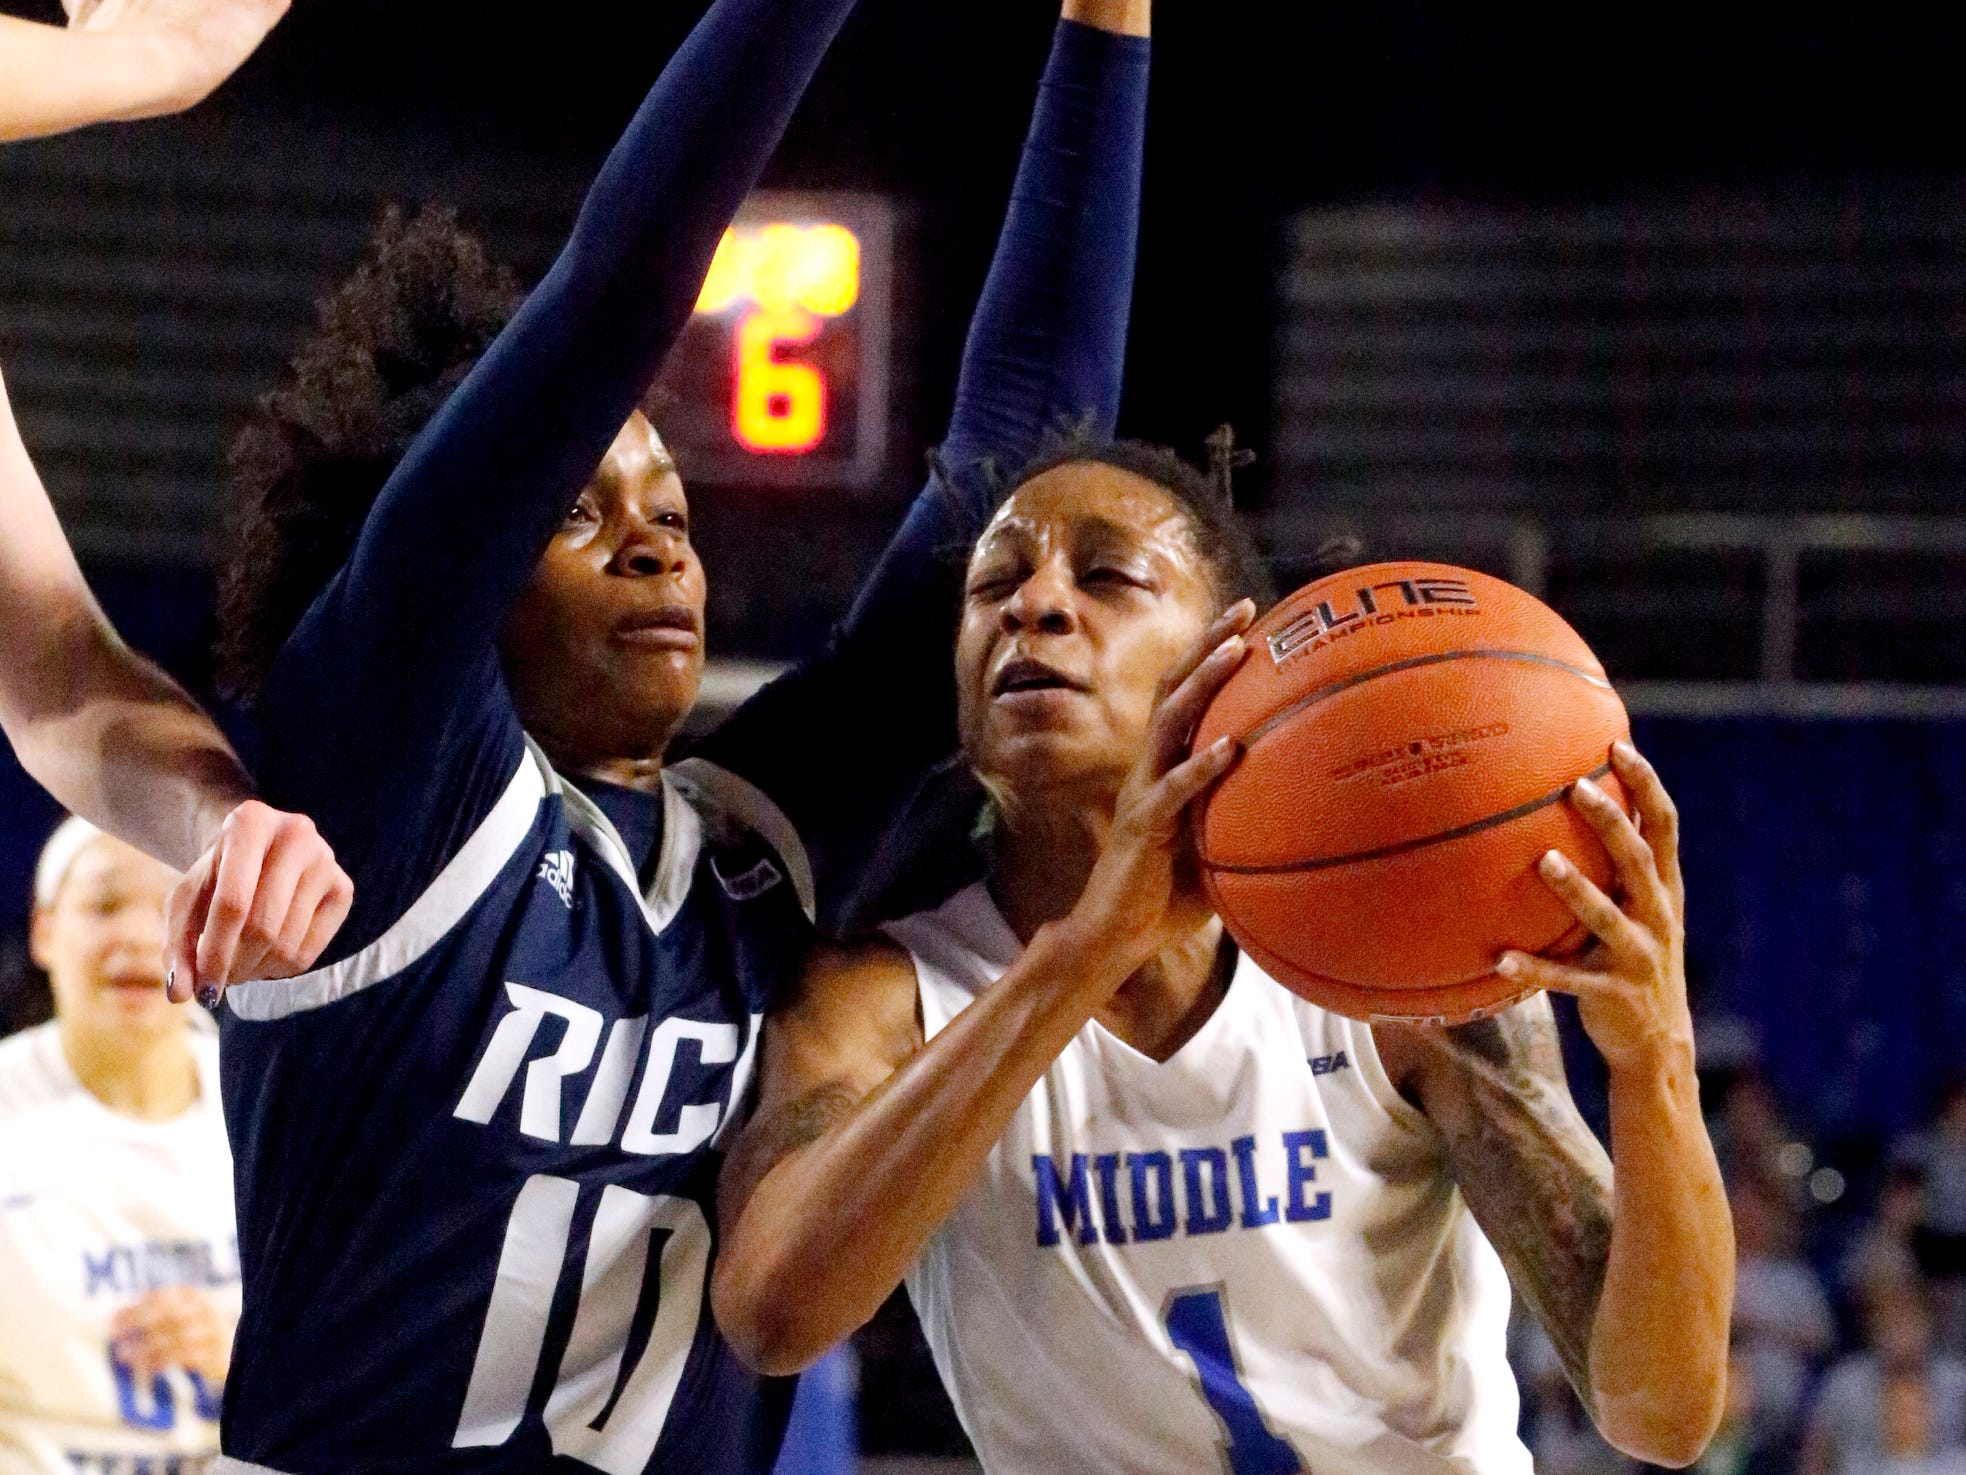 MTSU's guard A'Queen Hayes (1) pushes toward the basket as Rice's guard Jasmine Smith (10) guards her on Thursday Jan. 24, 2019.